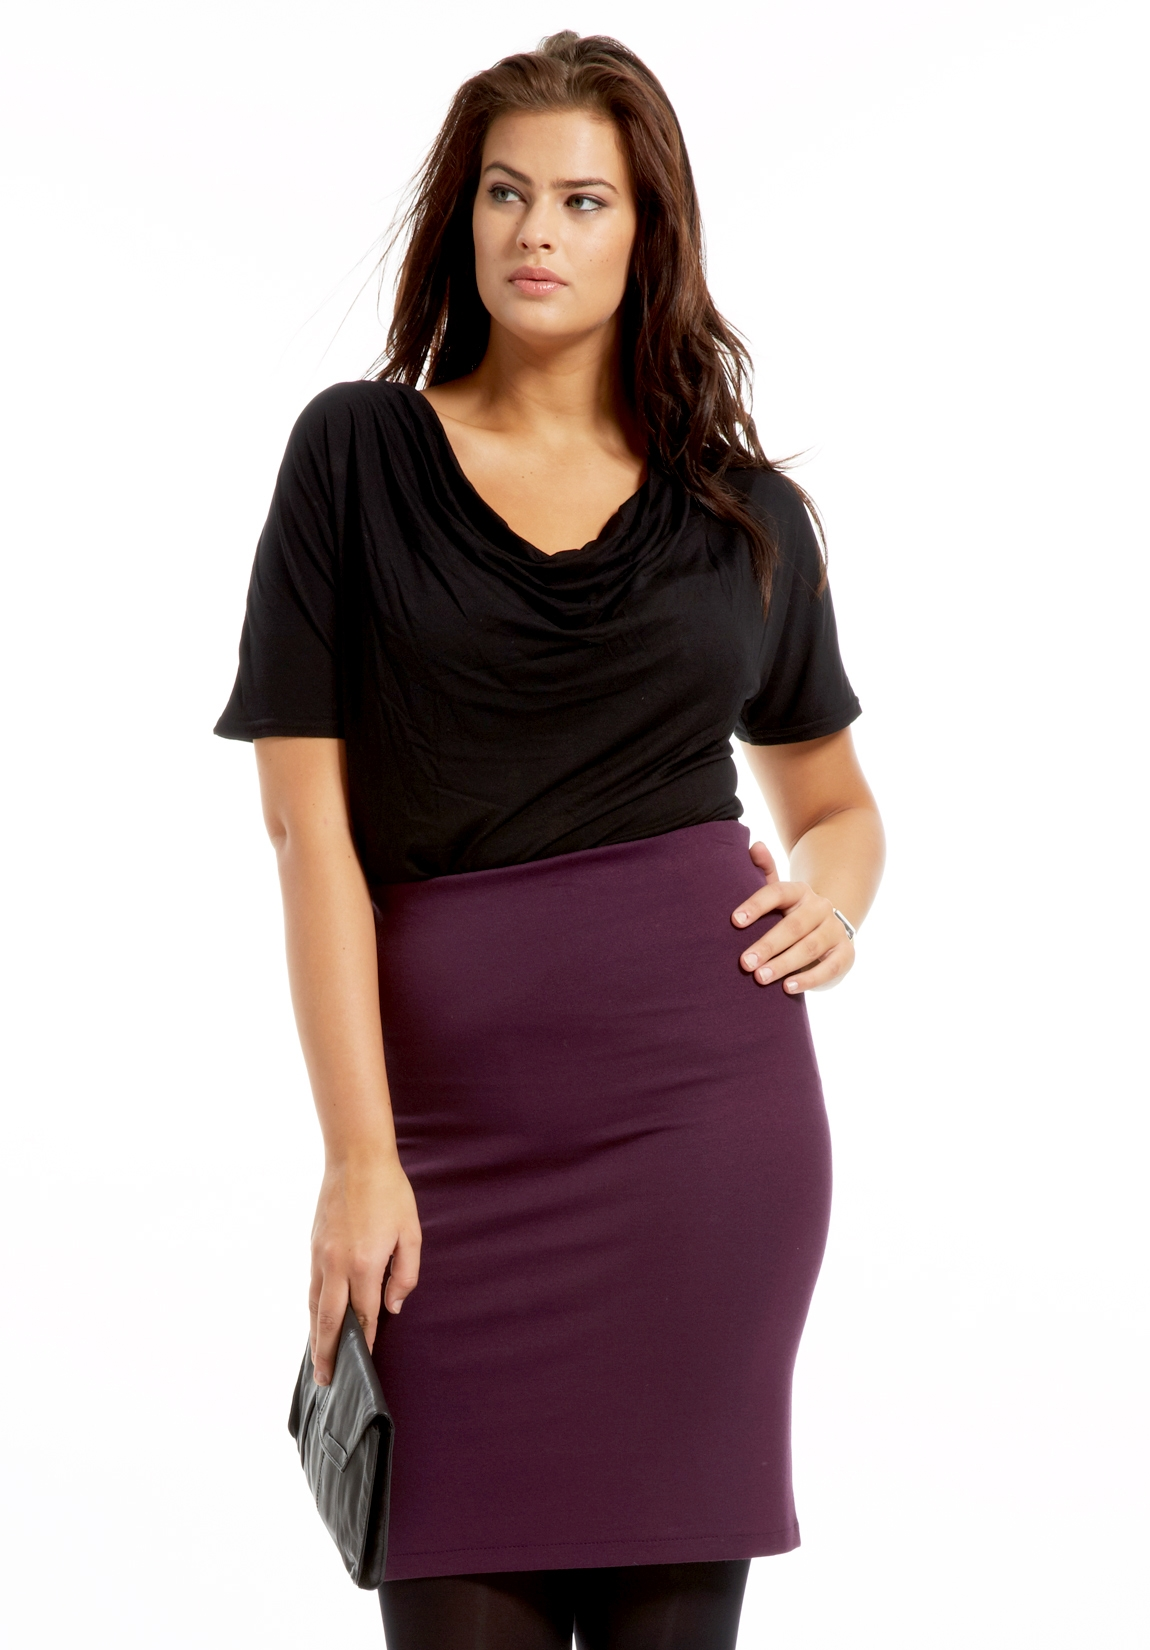 Jupe grande taille jupe longue d hiver   Mode daily 769615f59ffa